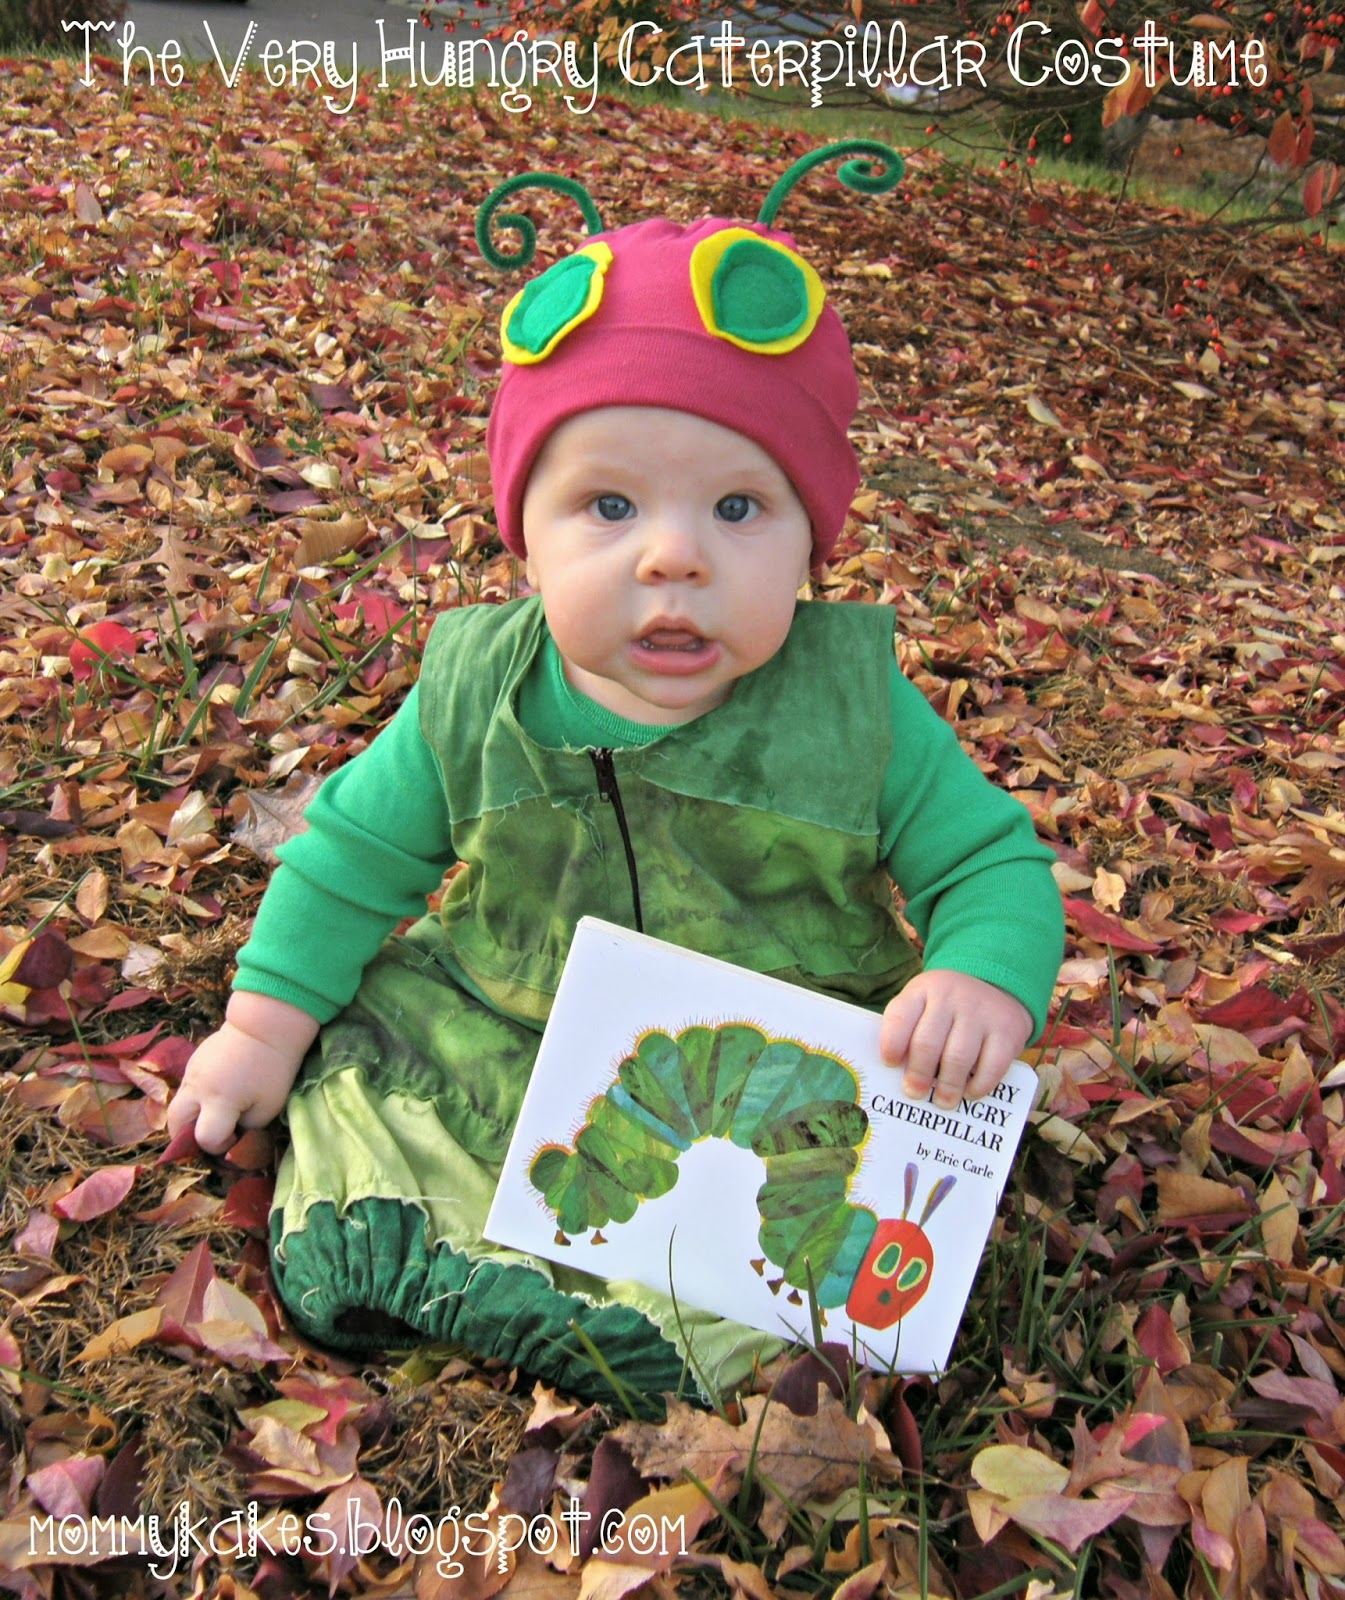 The Very Hungry Caterpillar Costume  sc 1 st  Mommykakes & Mommykakes: The Very Hungry Caterpillar Costume